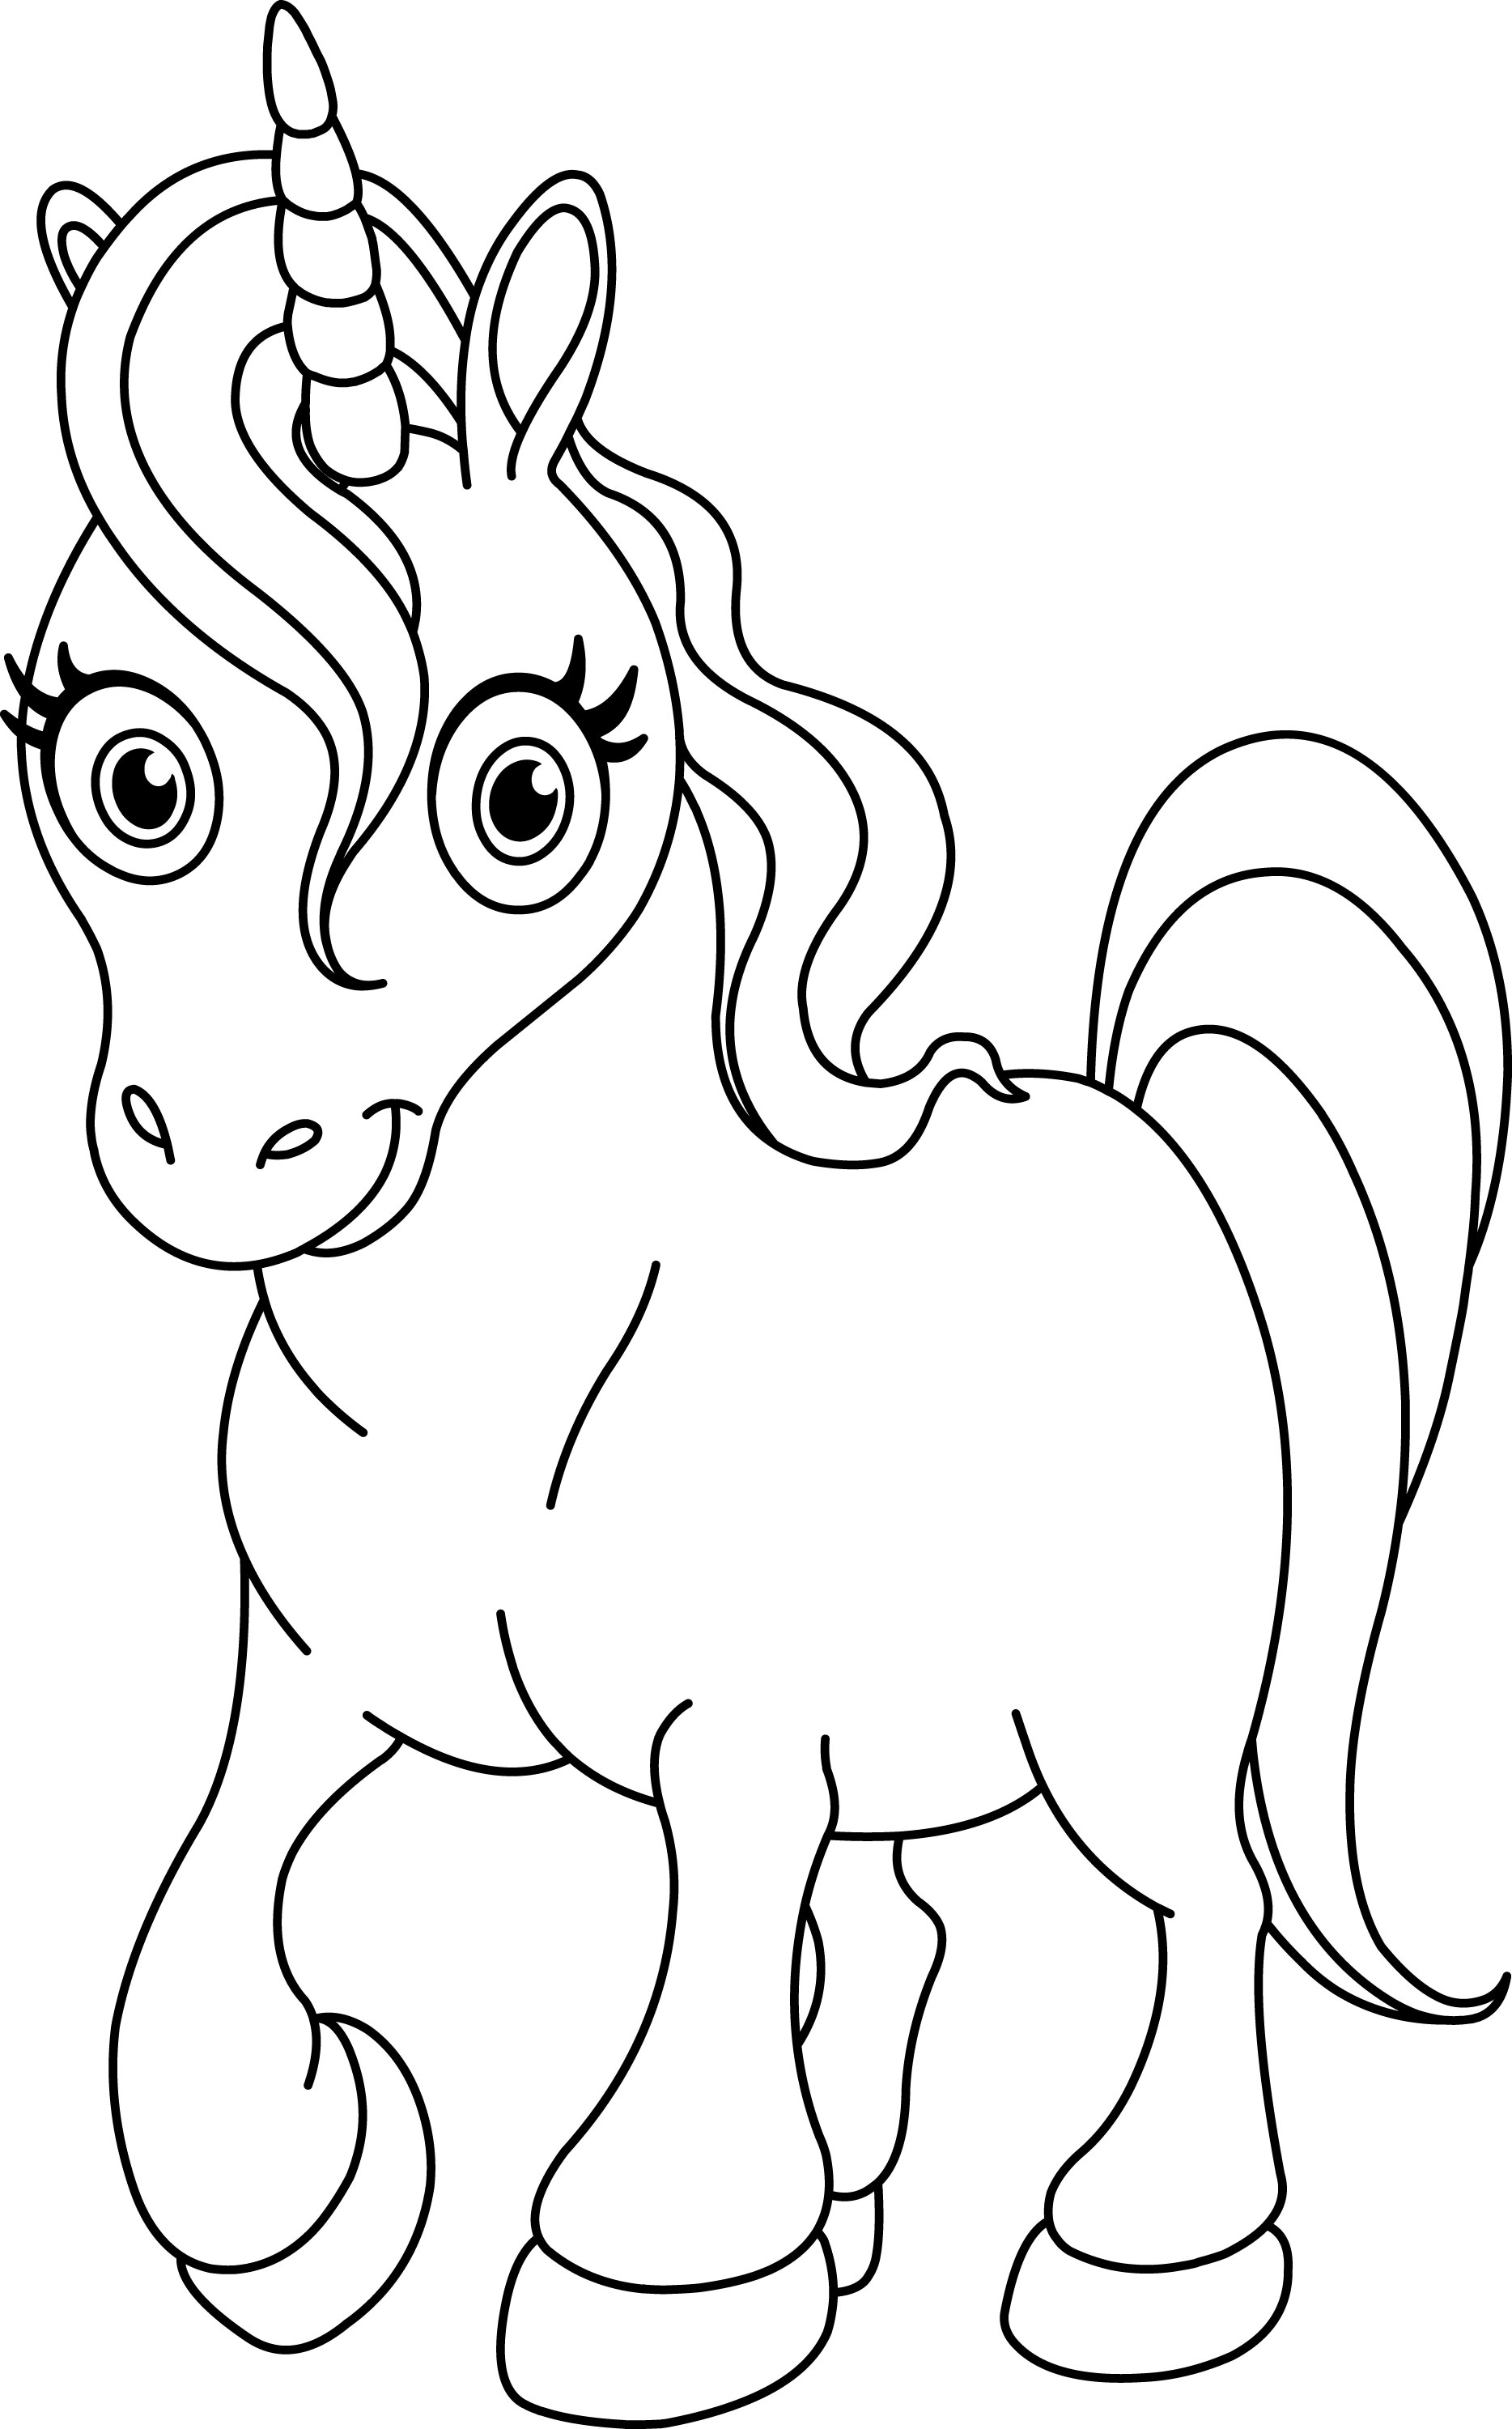 free coloring sheets unicorn april 2015 gtgt disney coloring pages free coloring sheets unicorn